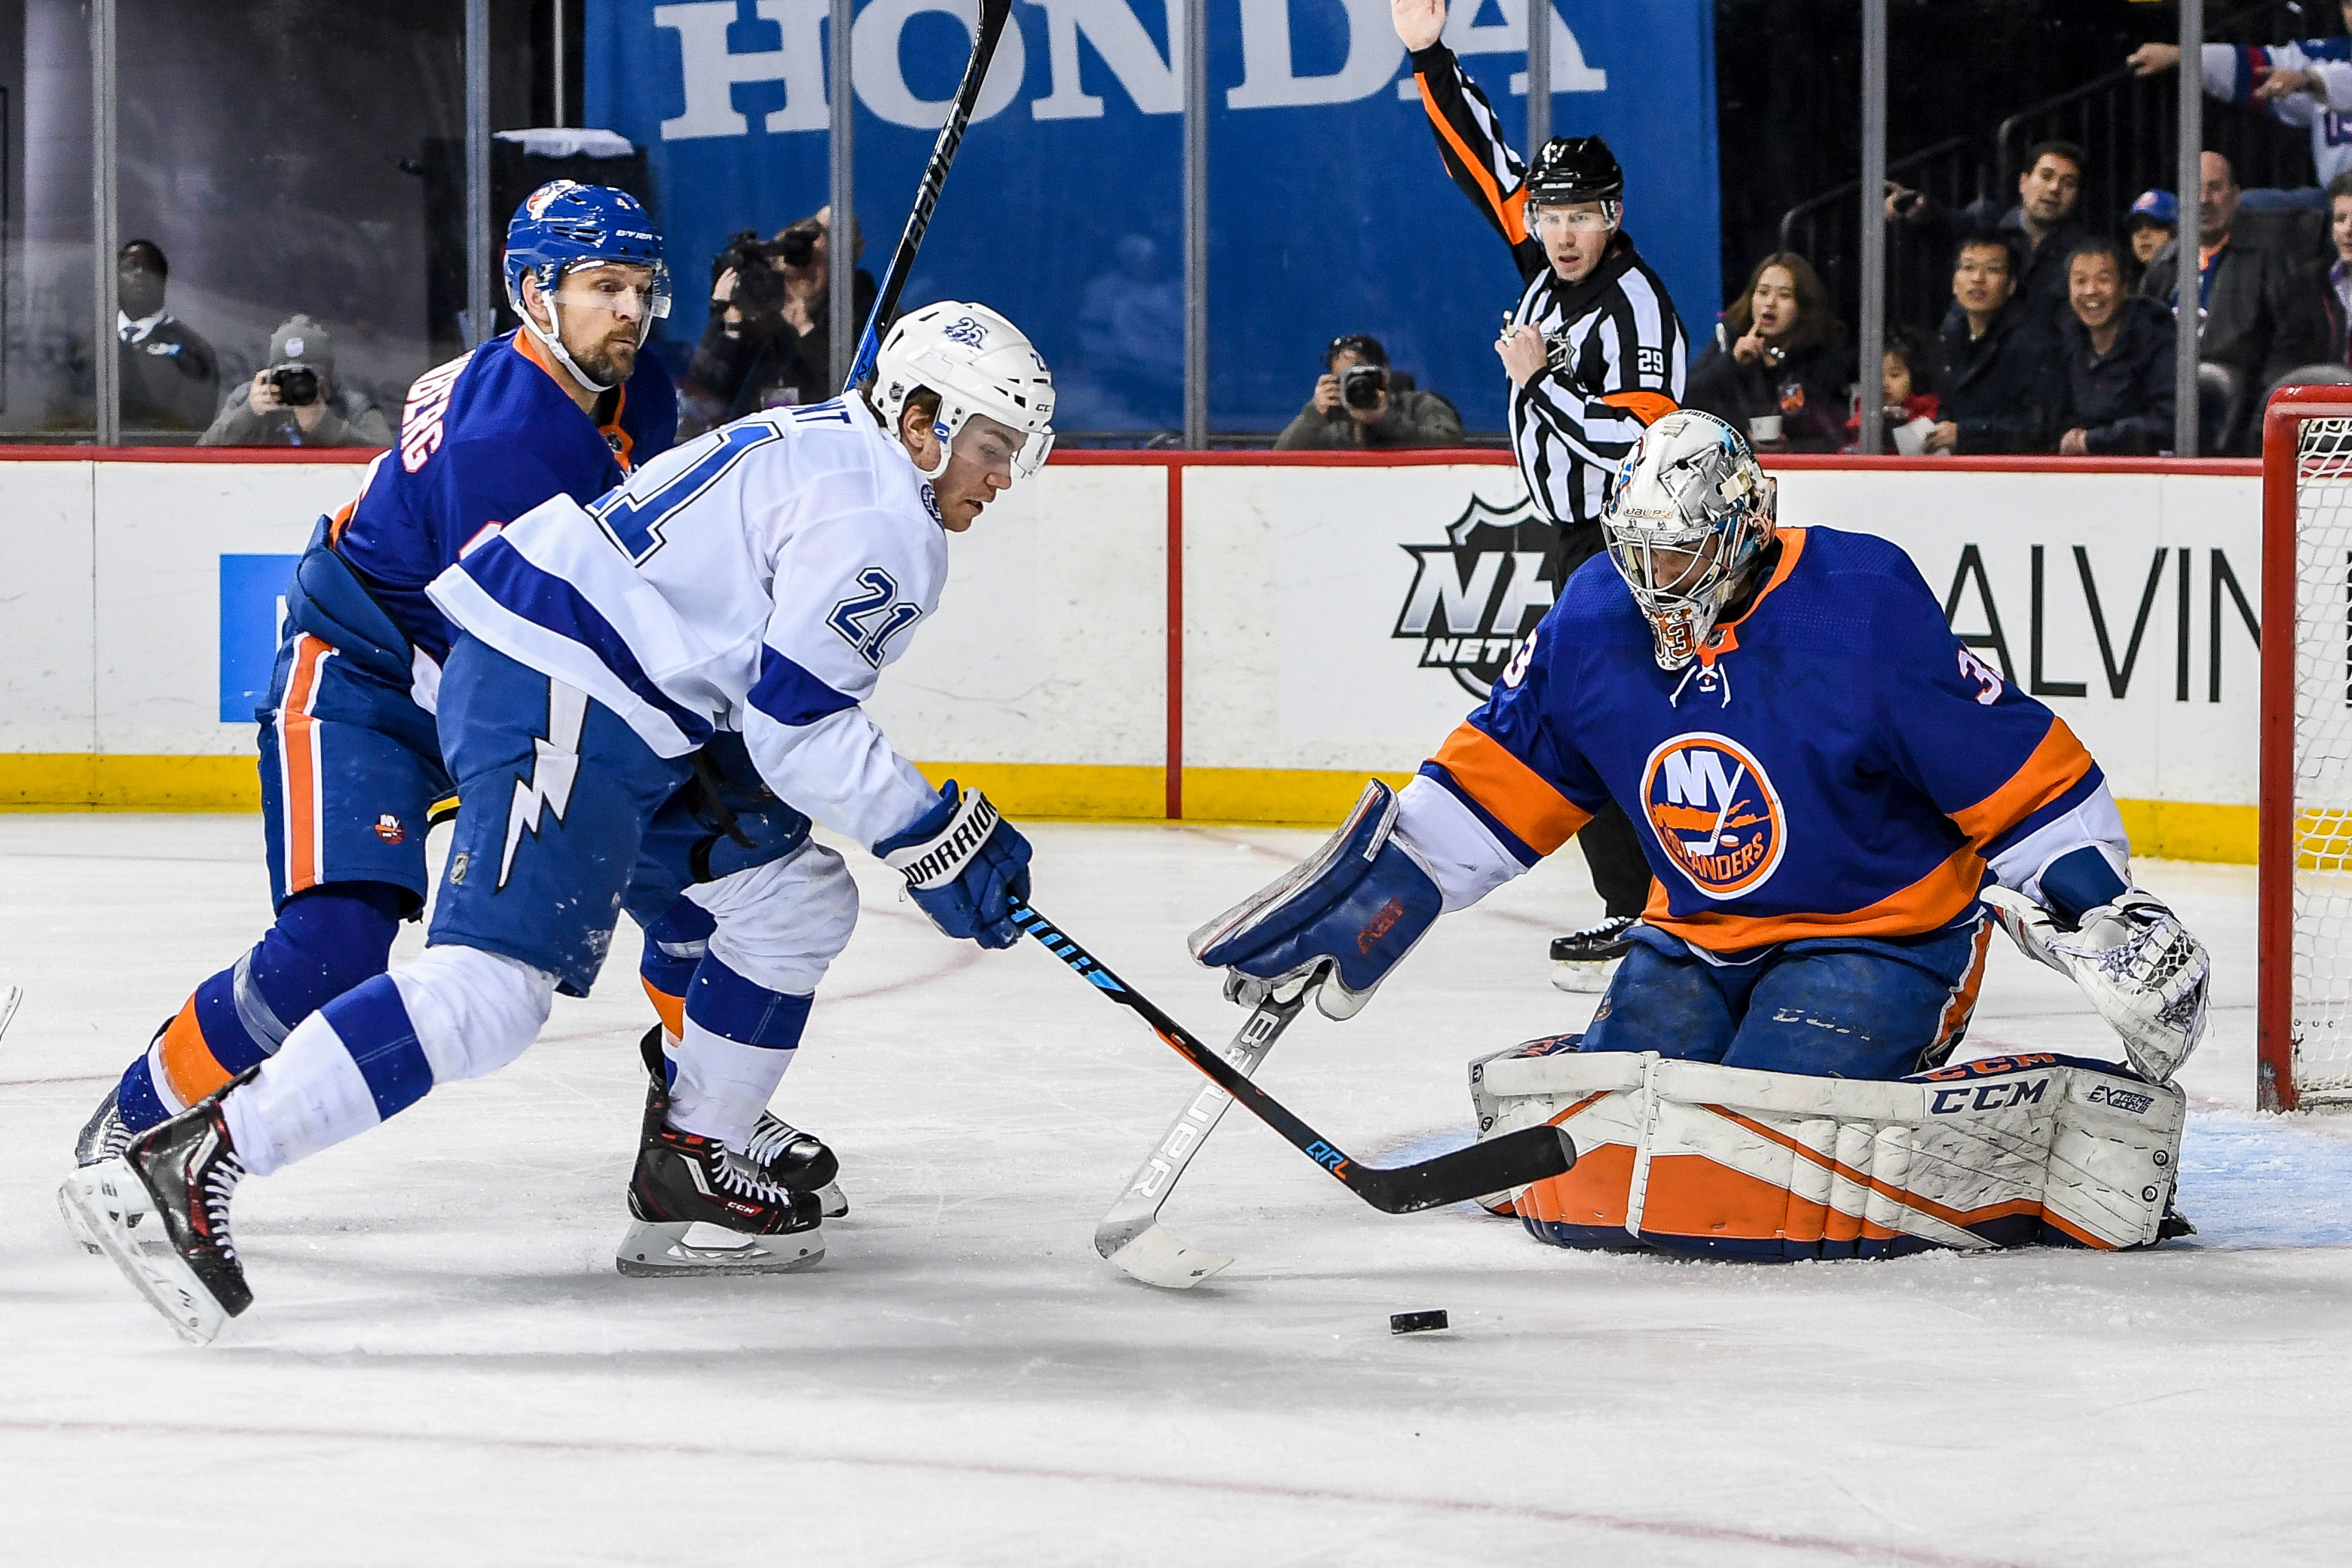 Mar 22, 2018; Brooklyn, NY, USA; Tampa Bay Lightning center Brayden Point (21) shoots against New York Islanders goaltender Christopher Gibson (33) during the first period at Barclays Center. Mandatory Credit: Dennis Schneidler-USA TODAY Sports